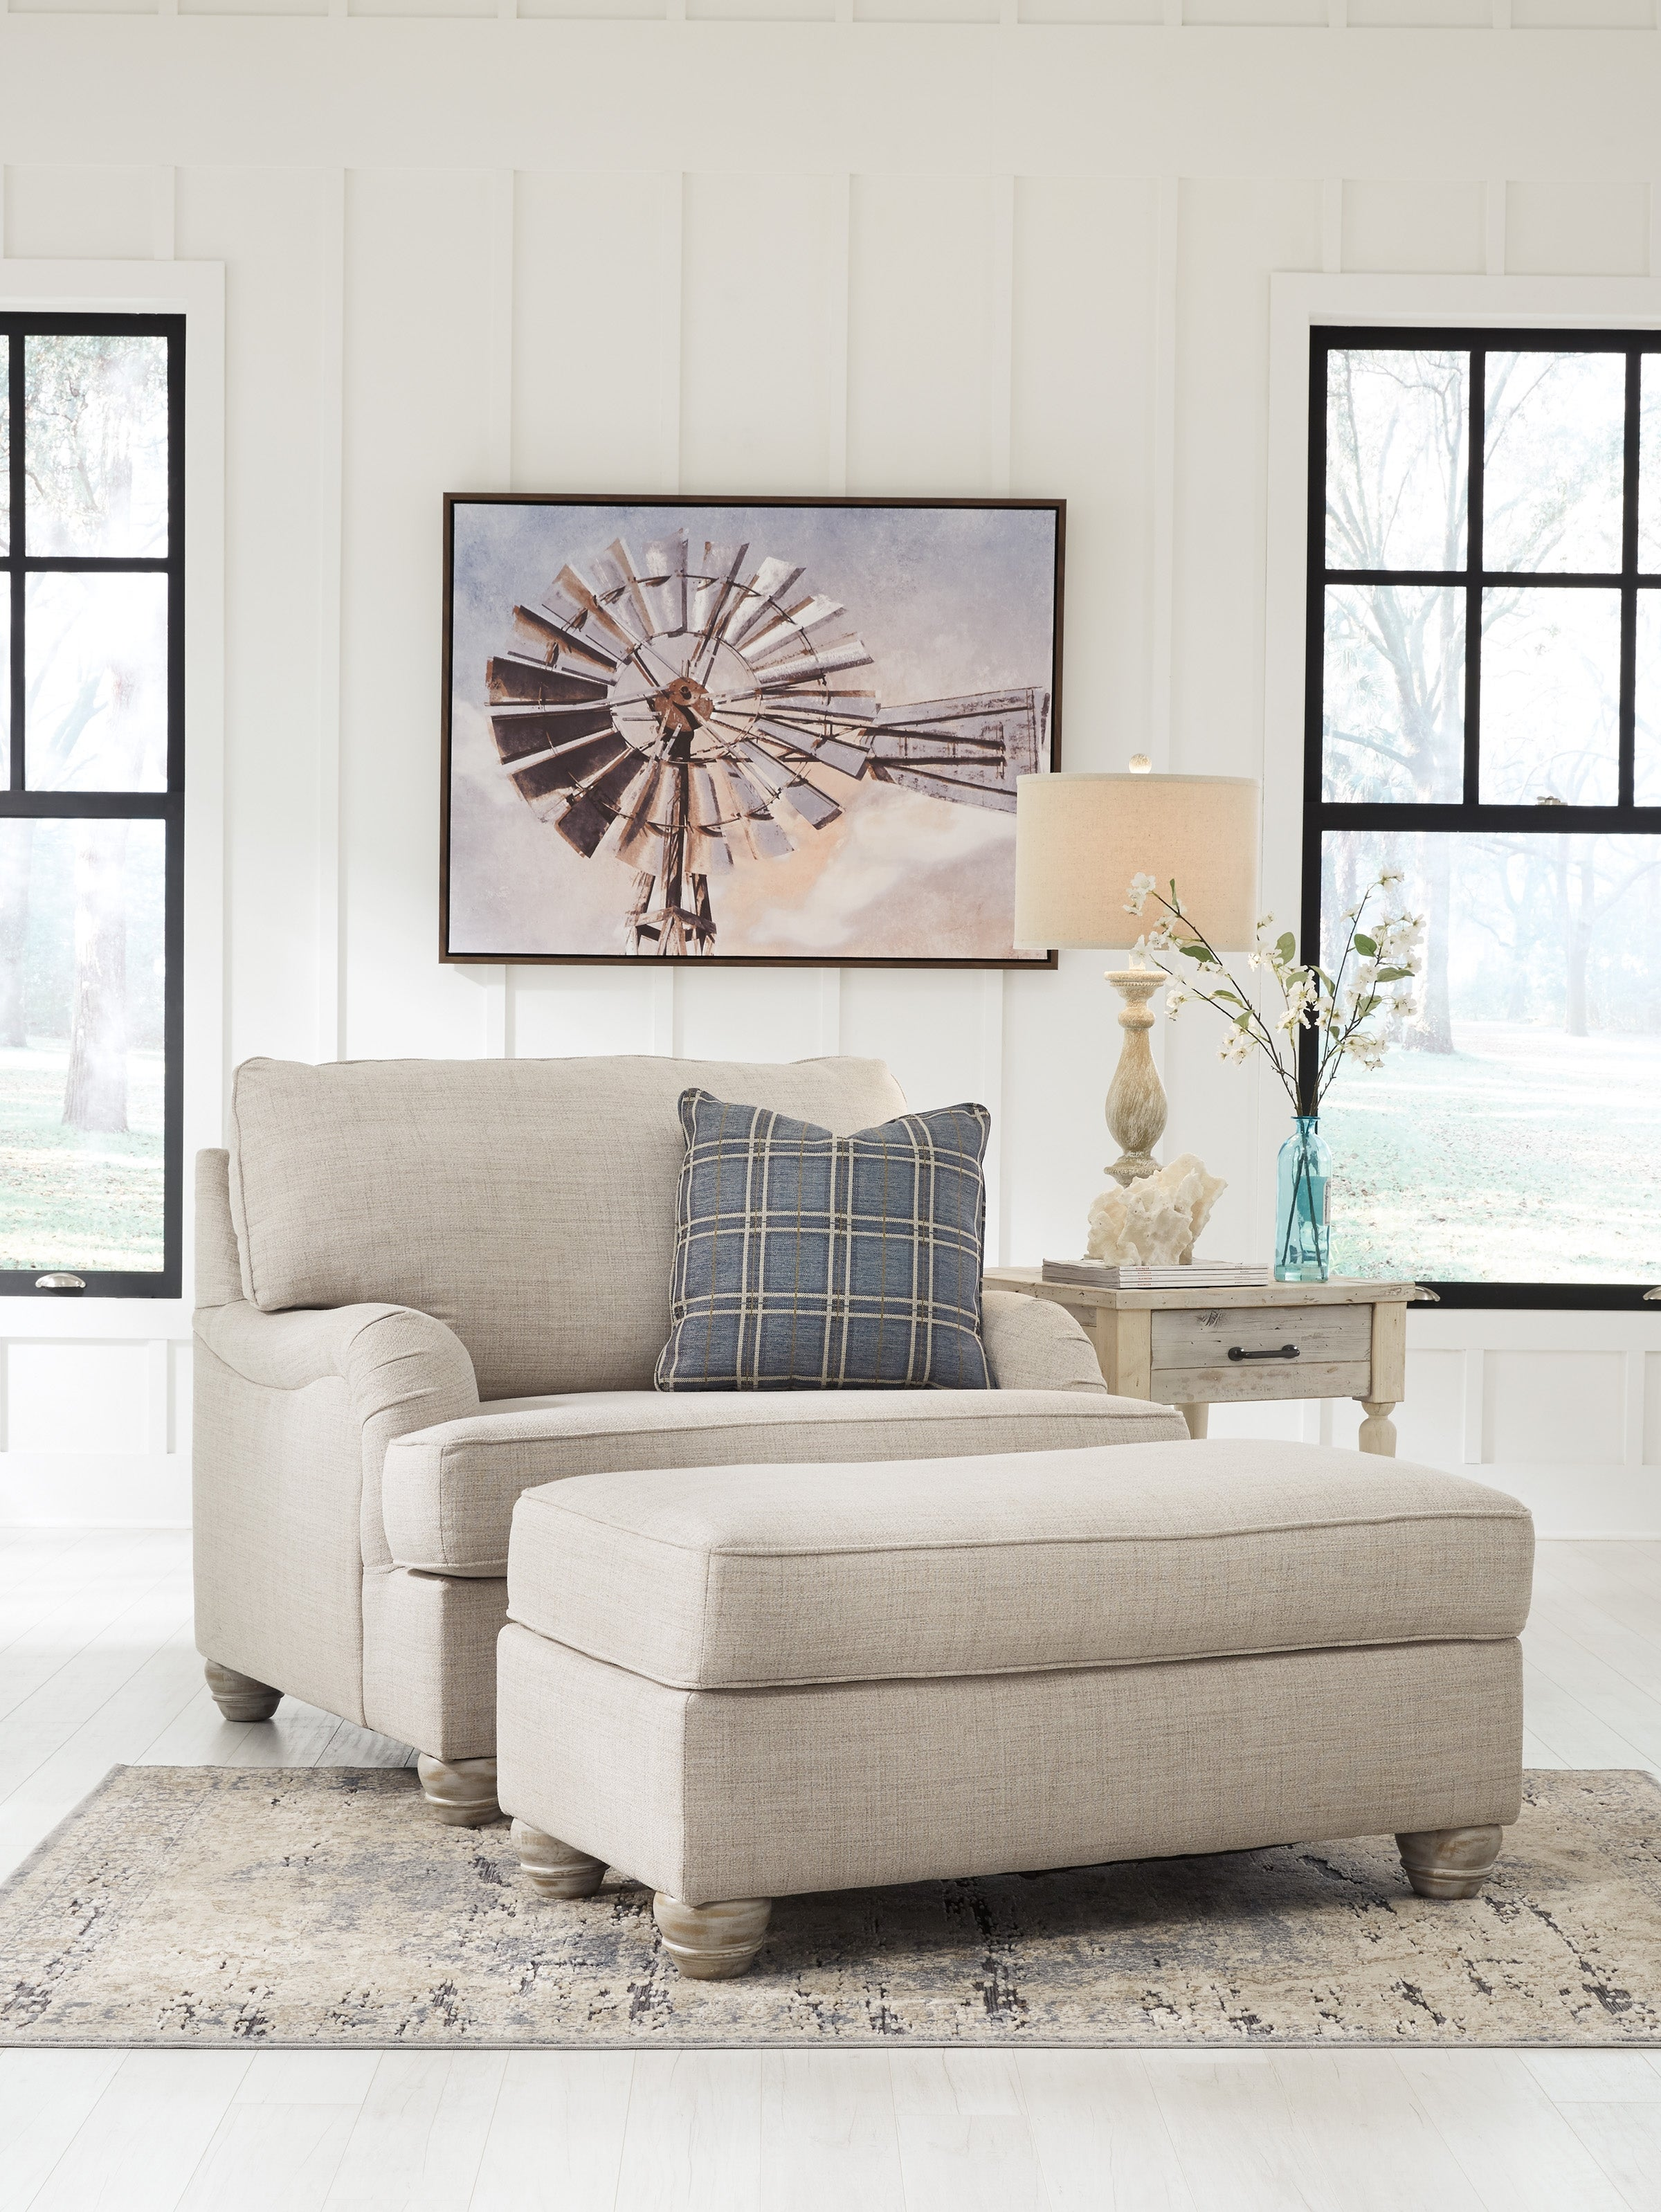 Isabelle 1 Seater Large Fabric Arm Chair With Ottoman - Beige - Traemore